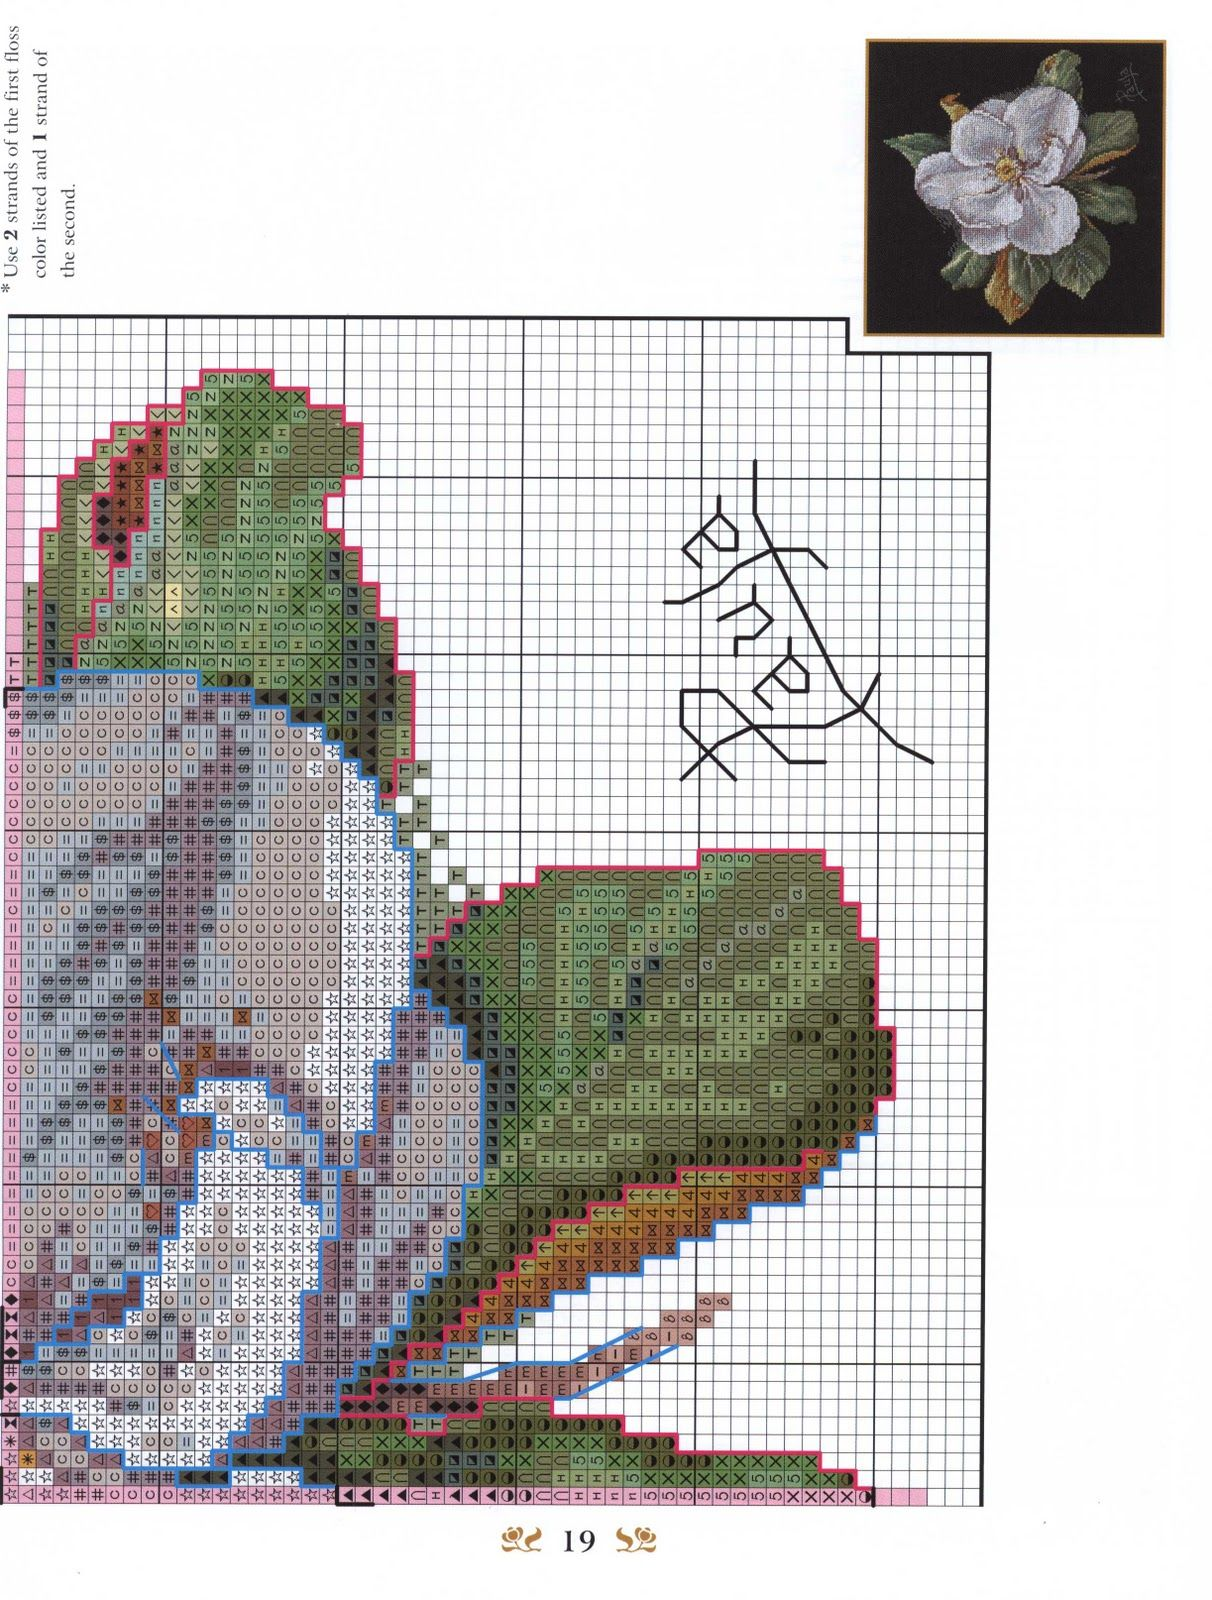 Needle-Works Butterfly: Cross stitched pillows with pattern